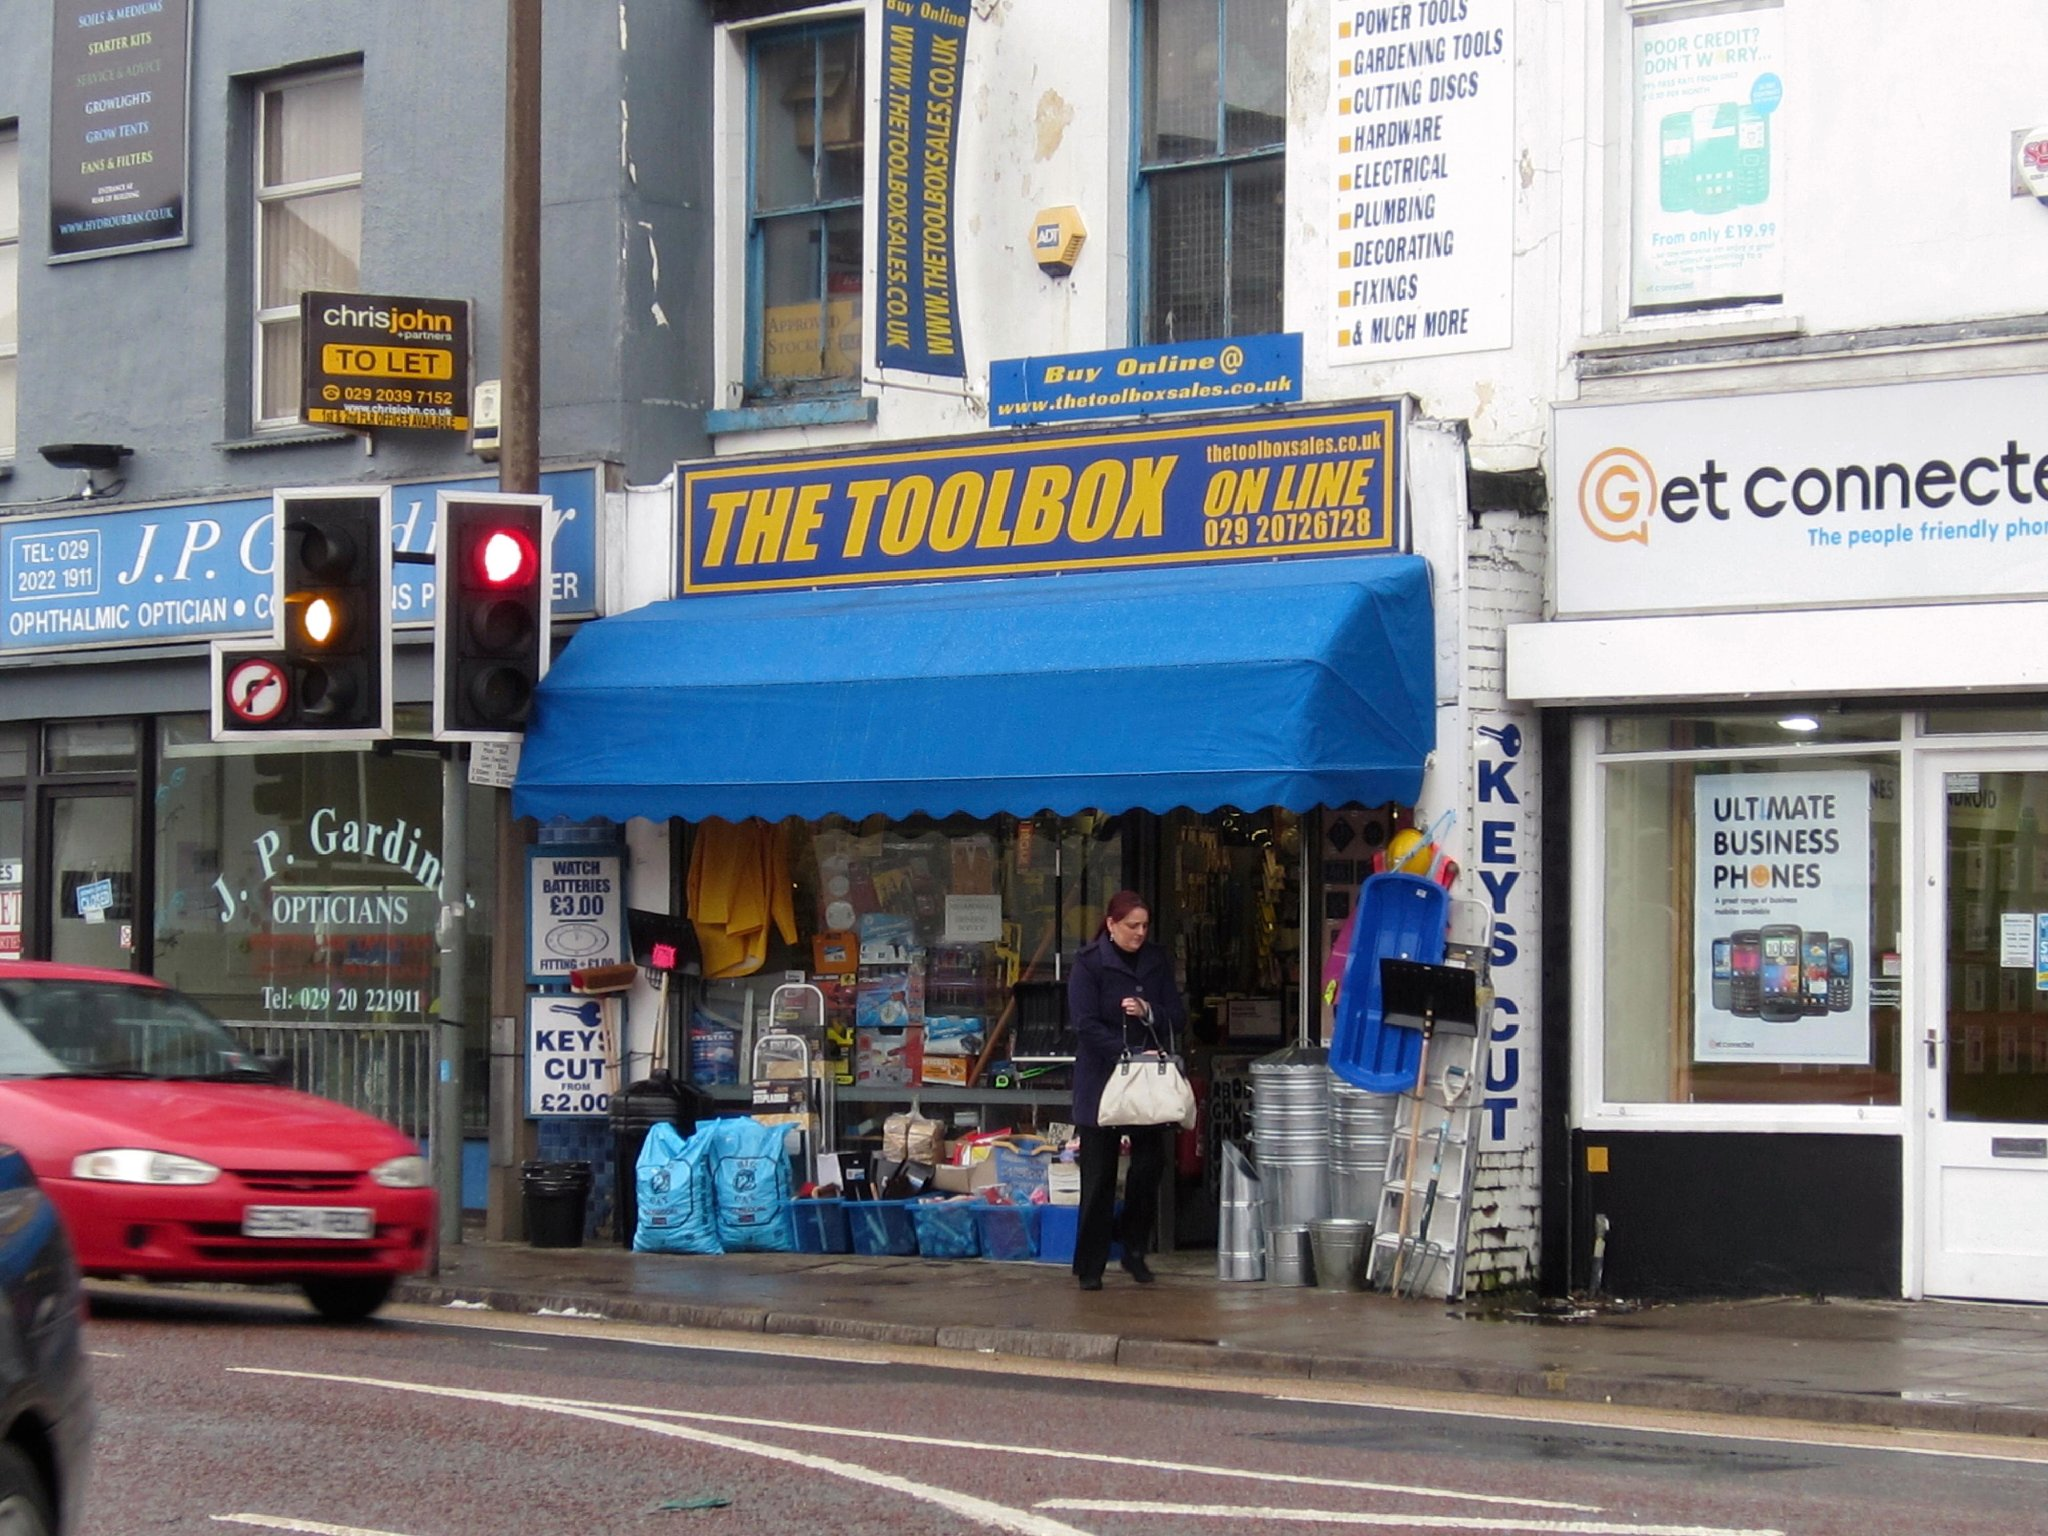 The Toolbox - Clothing Retailers in Cardiff CF11 9NE - 192.com